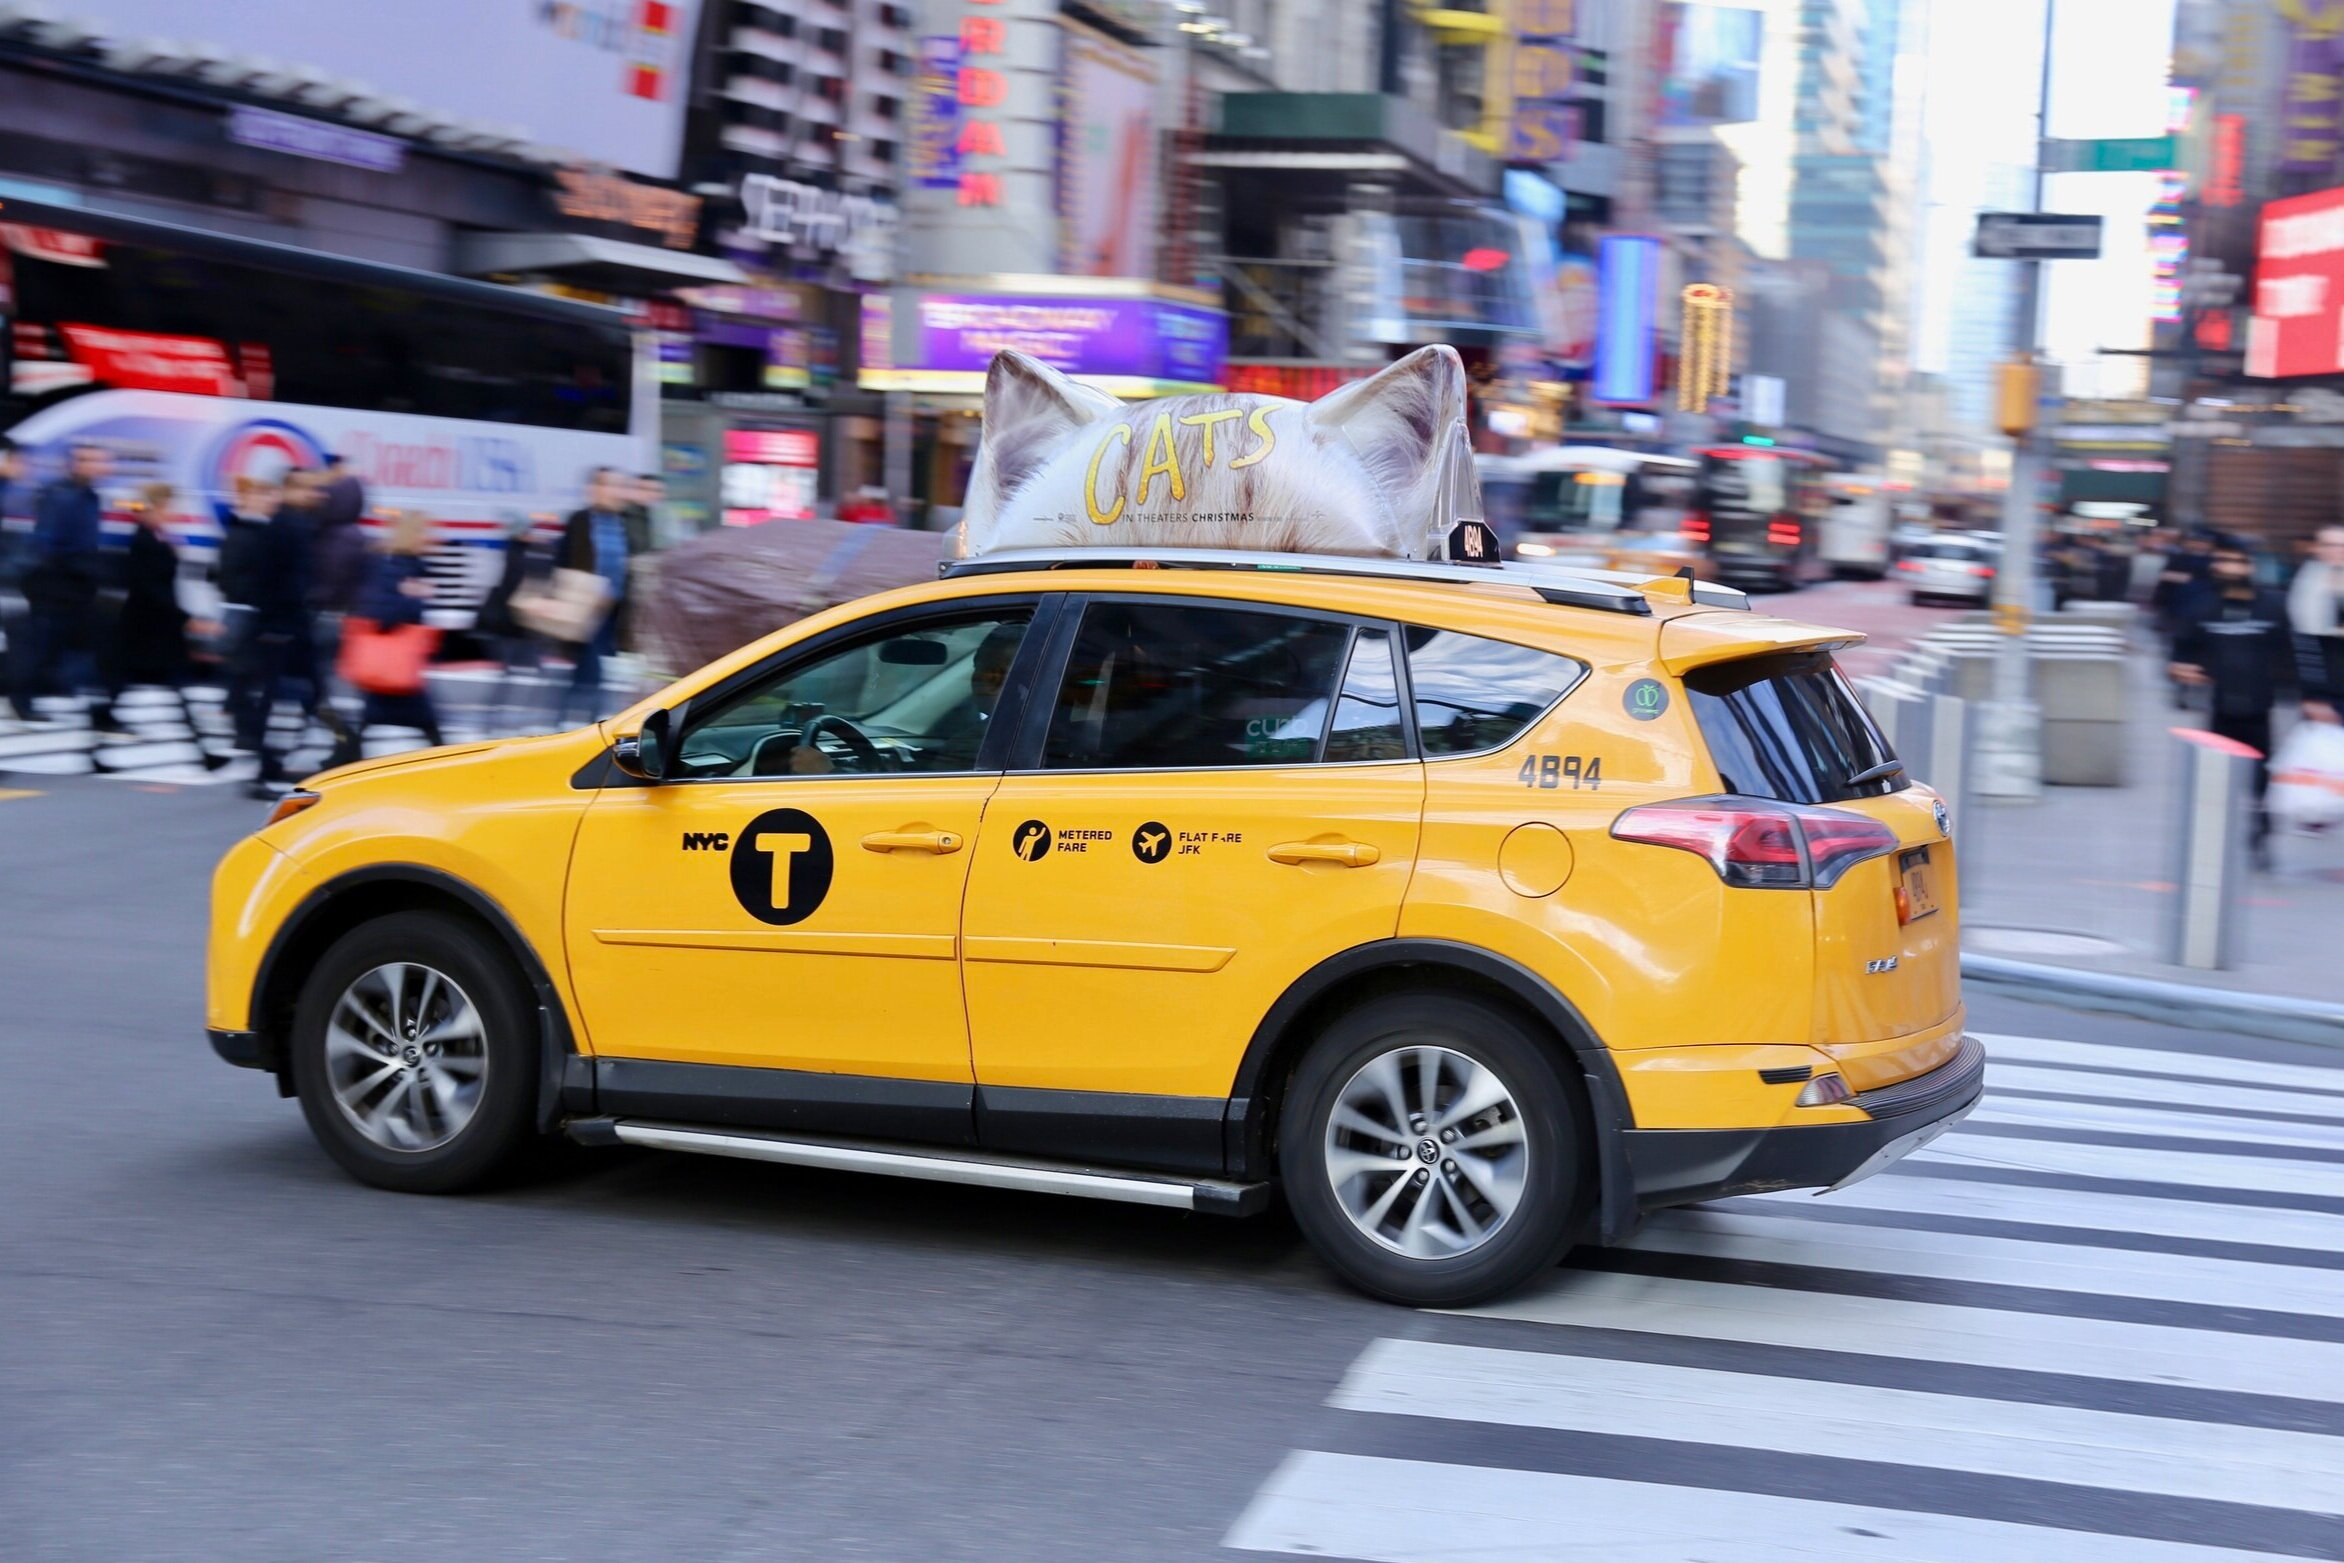 Yellow Curb Meaning >> News Curb Taxi Media